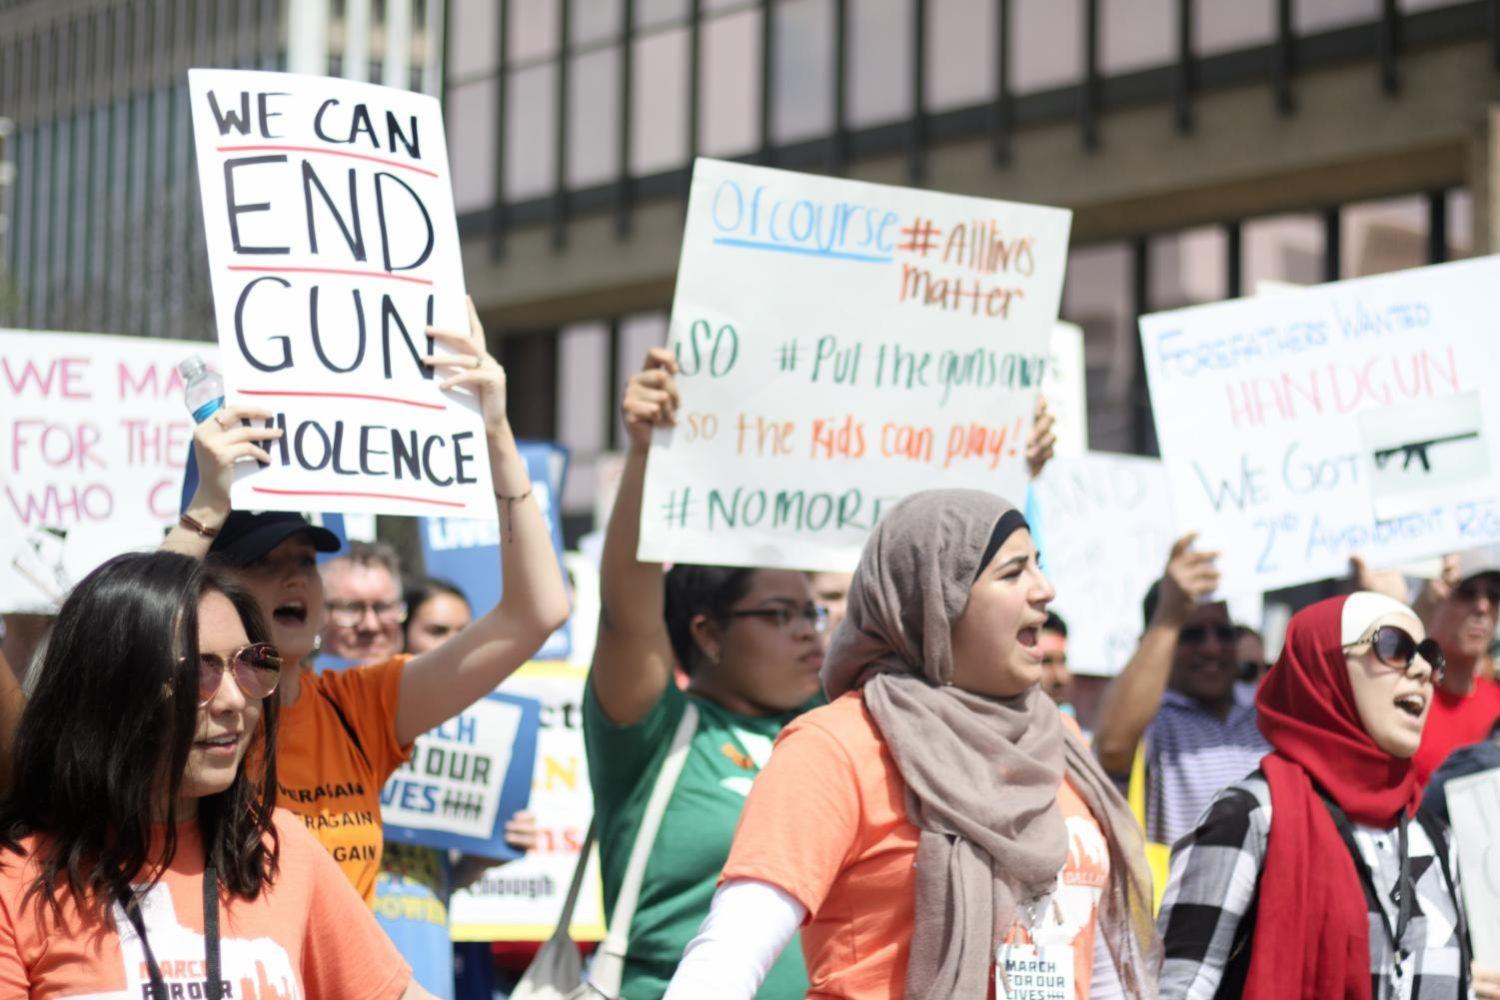 Marching protesters lift their signs and lead chants in support of gun control. On Saturday, protesters gathered to speak out against gun violence in the March For Our Lives in Dallas.